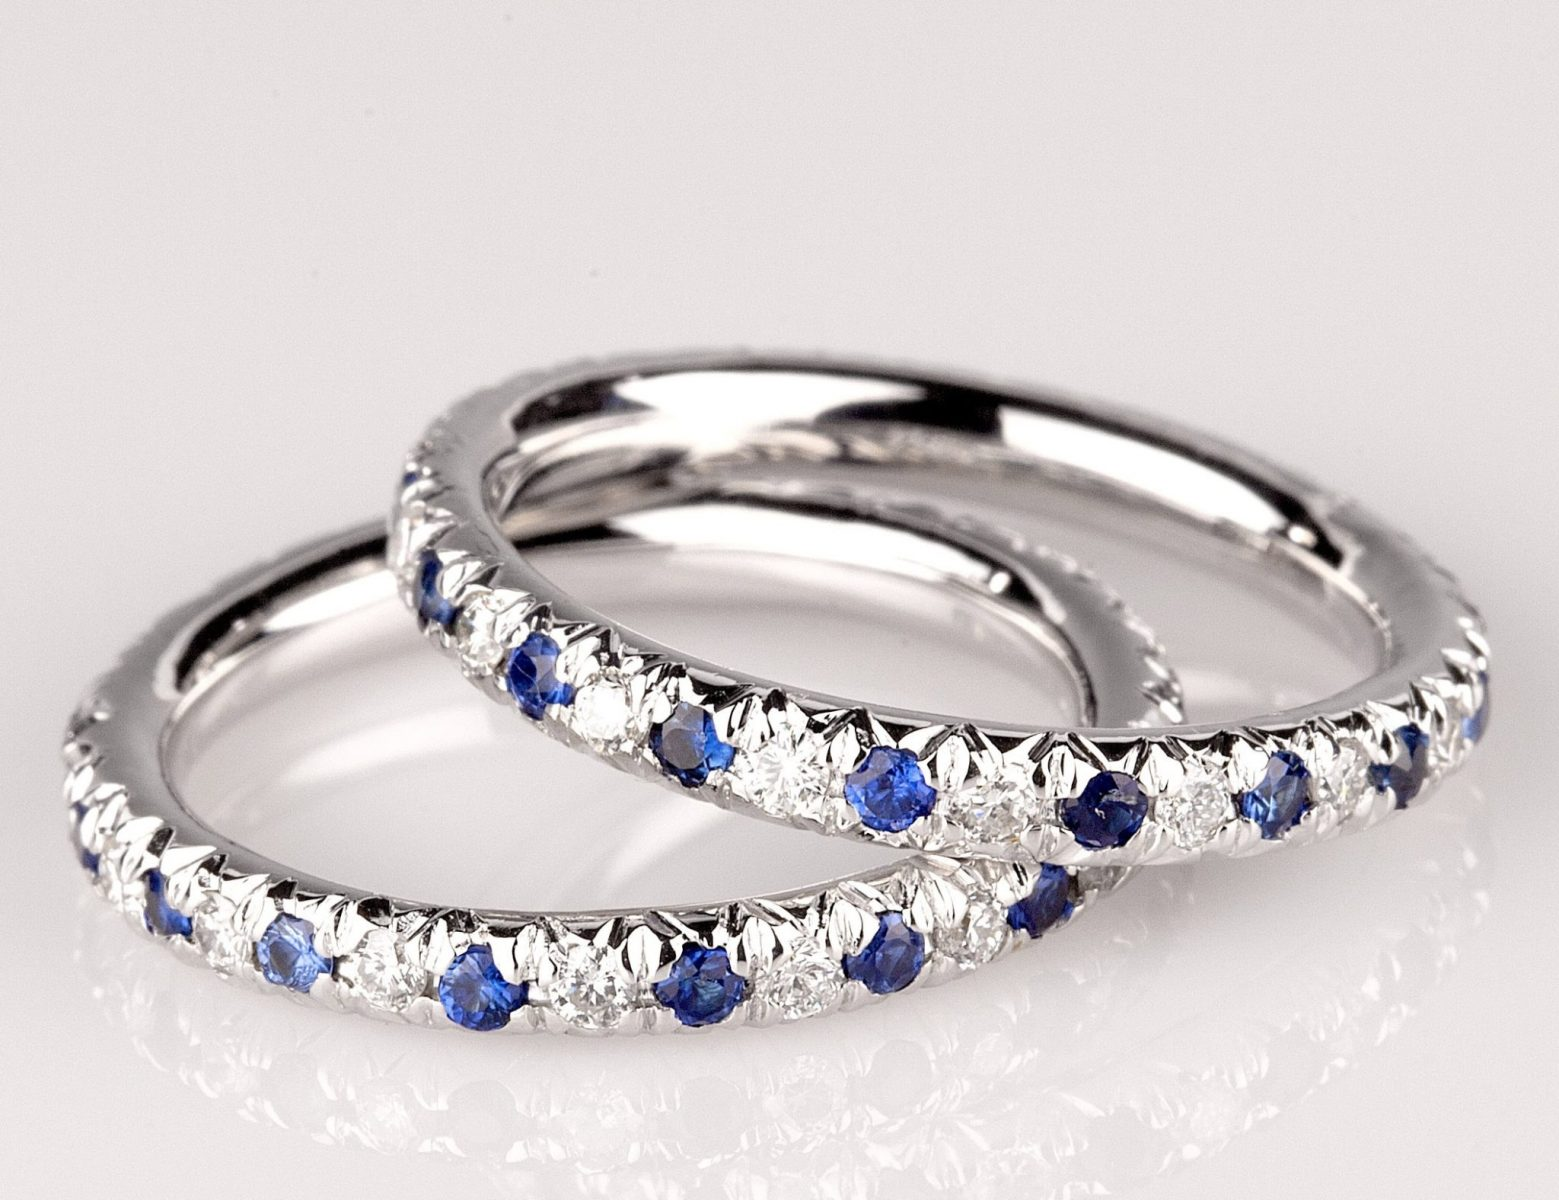 com cost for band most xexpensive rings luxury diamond bands registaz wedding amazing women platinum blue popular